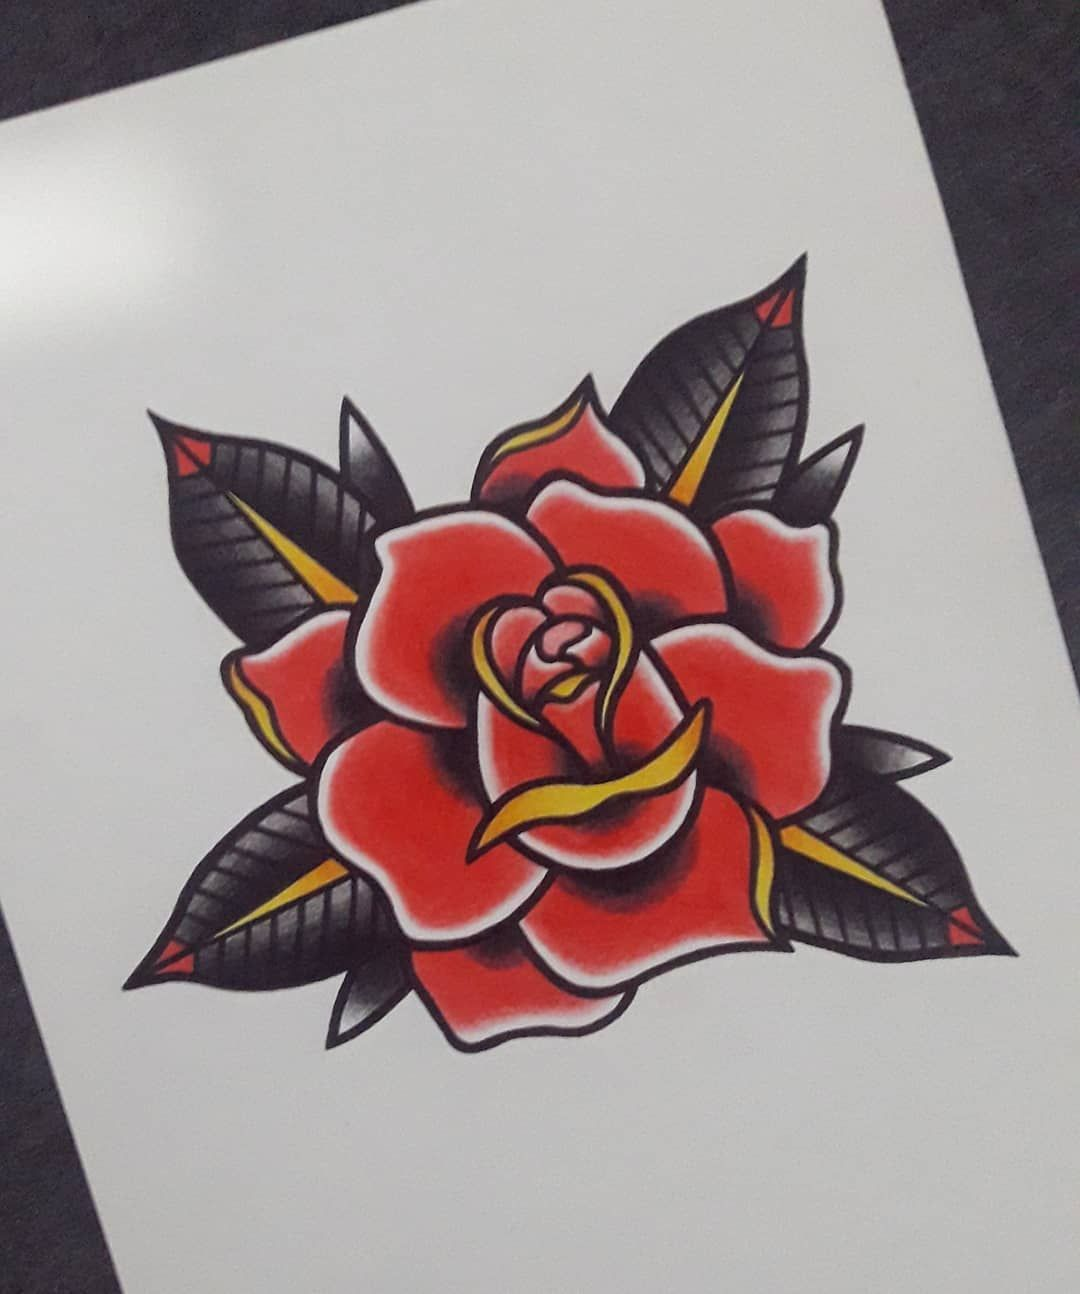 Rose Old School Old School Rose Traditional Rose Tattoos Old School Tattoo Designs